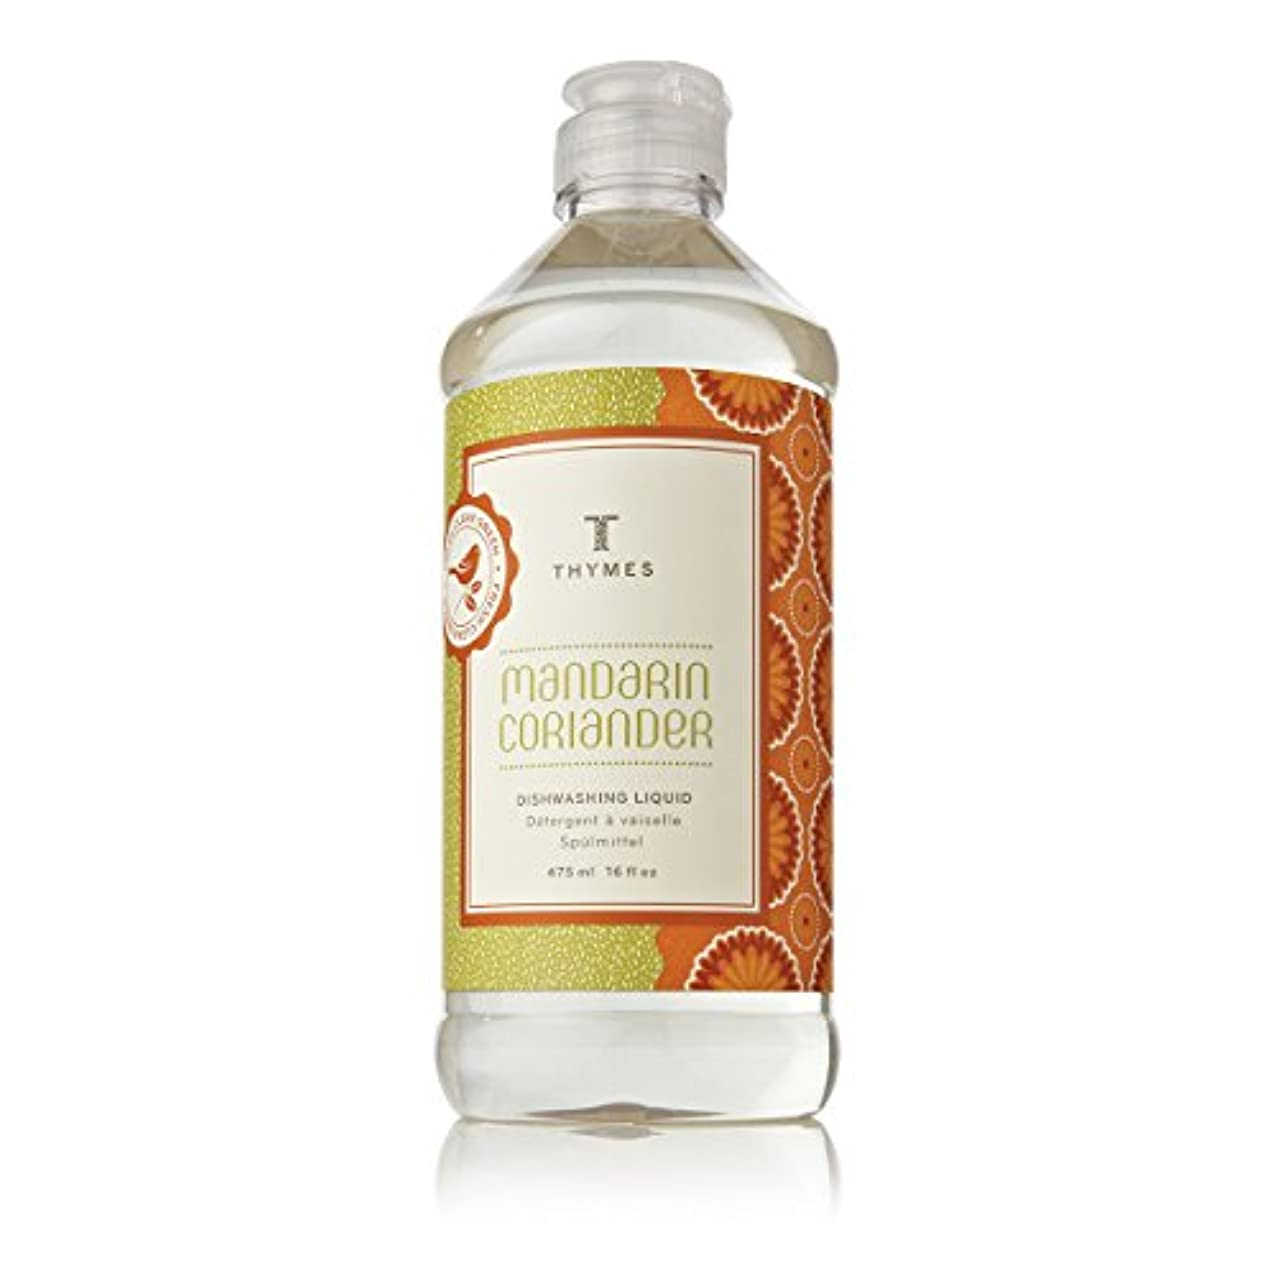 逮捕ゲーム自我Thymes Mandarin Coriander Dishwashing Liquid - Oz. Natural Body Hand 0510720100 by Thymes [並行輸入品]